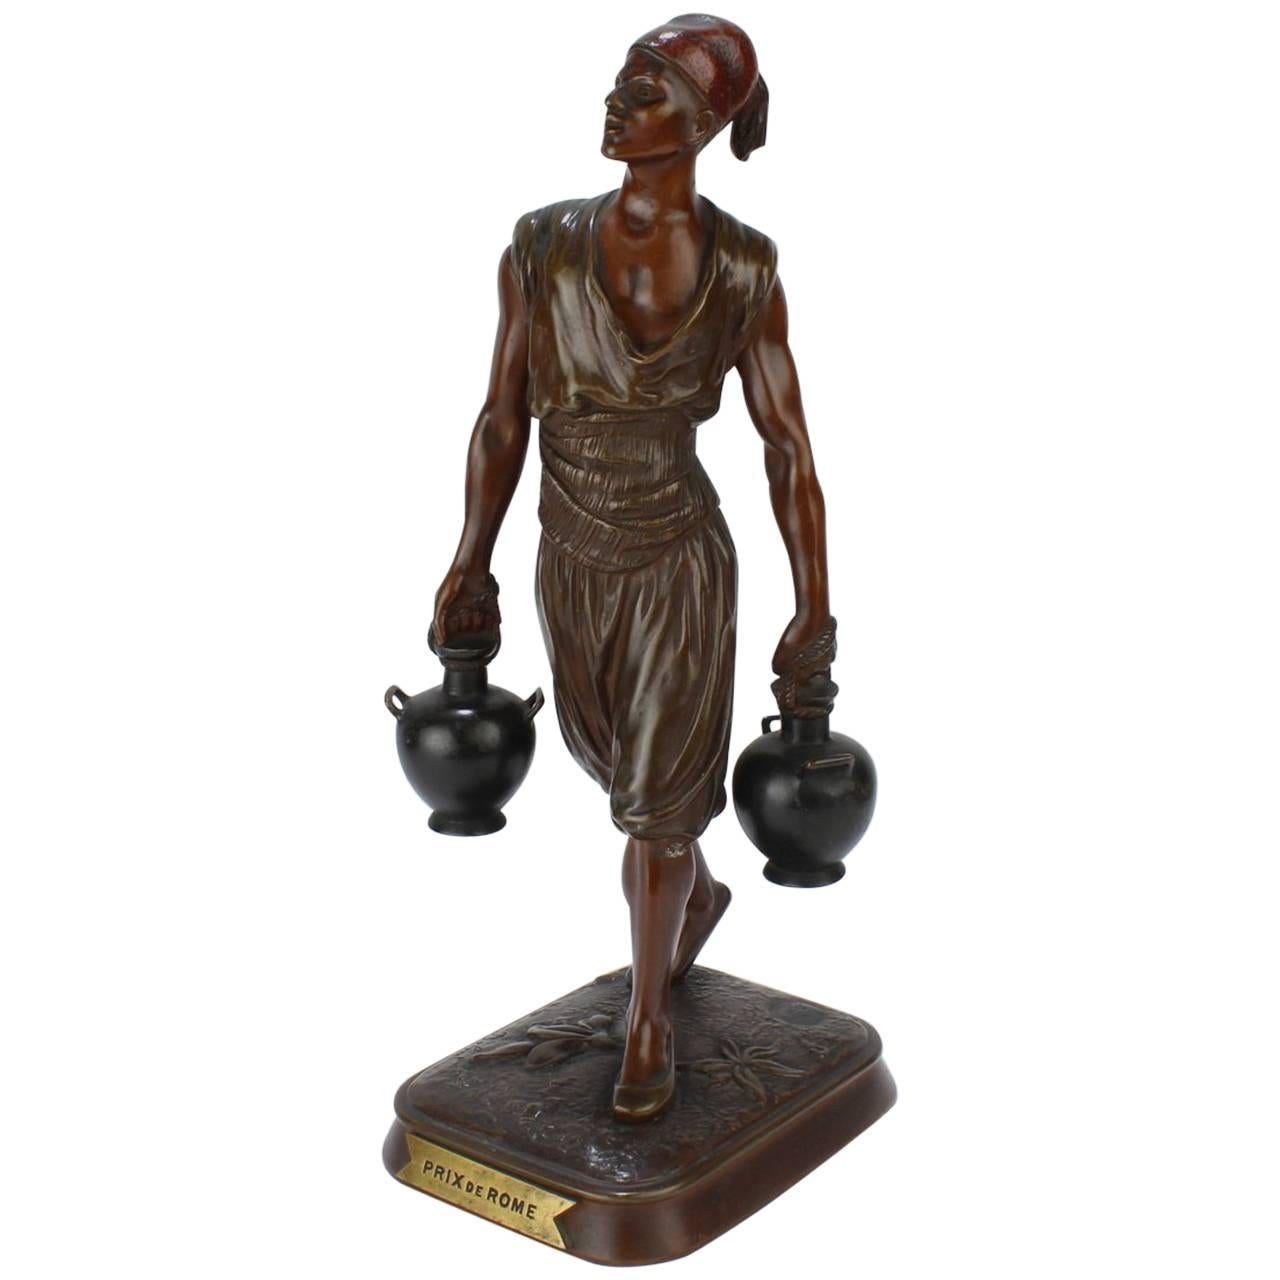 French Orientalist Bronze Tunisian Water Carrier Sculpture by Jean-Didier Debut